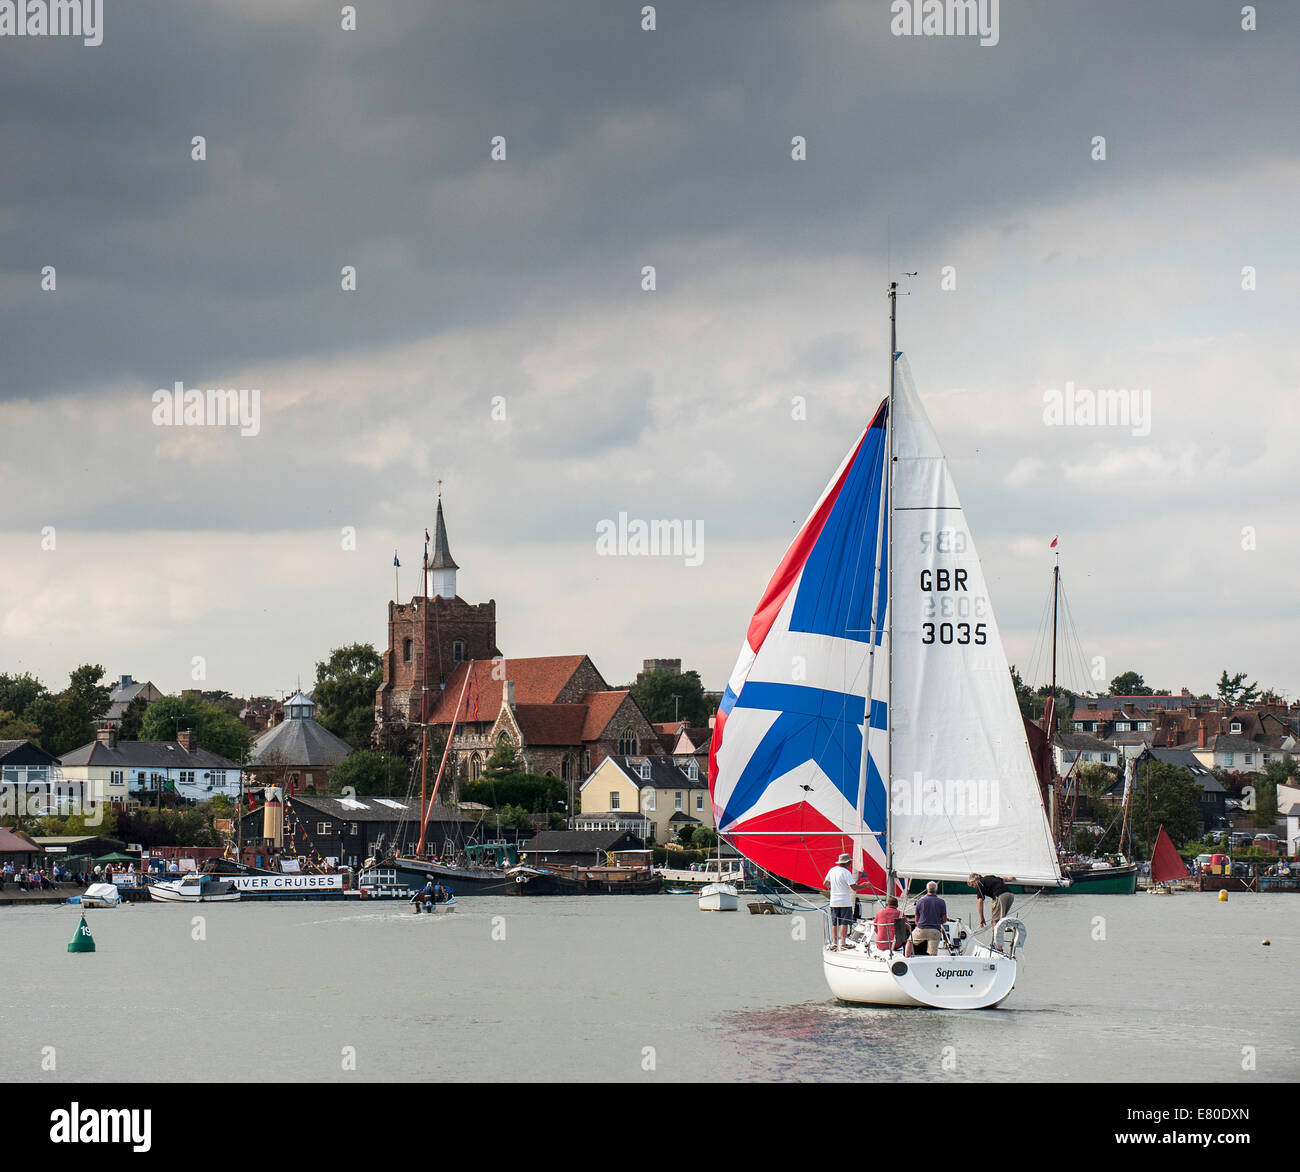 Maldon, UK. 27th September, 2014. A sailboat  participates in the spectacular Parade of Sail at the Maldon Regatta - Stock Image